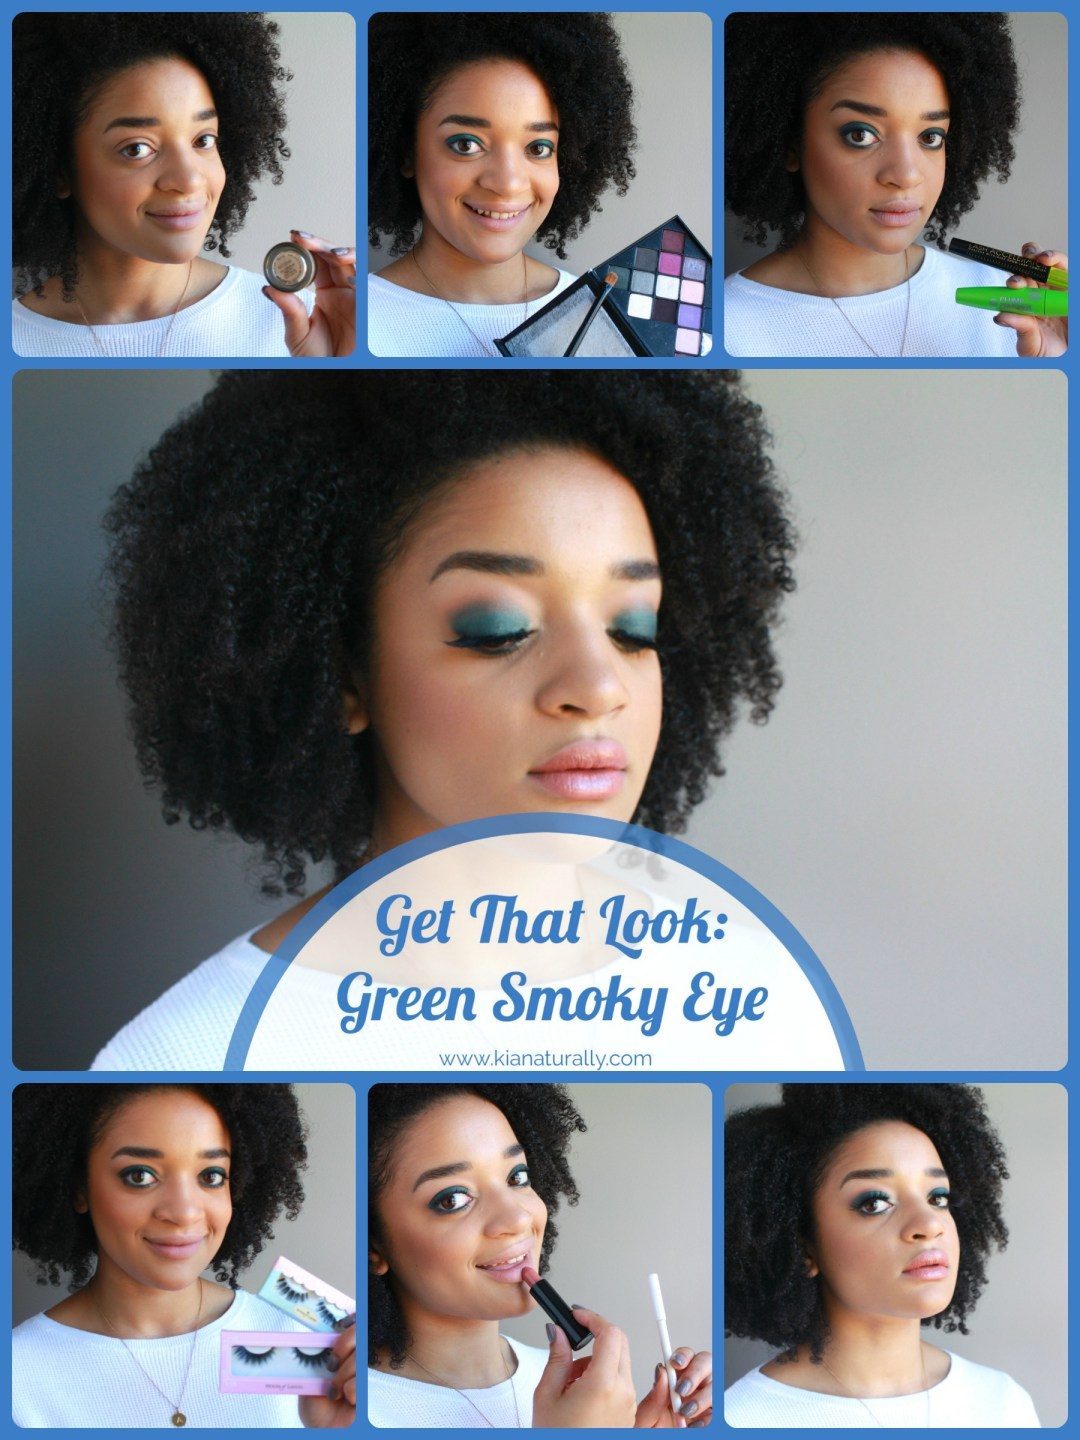 Get That Look: Green Smoky Eye - www.kianaturally.com